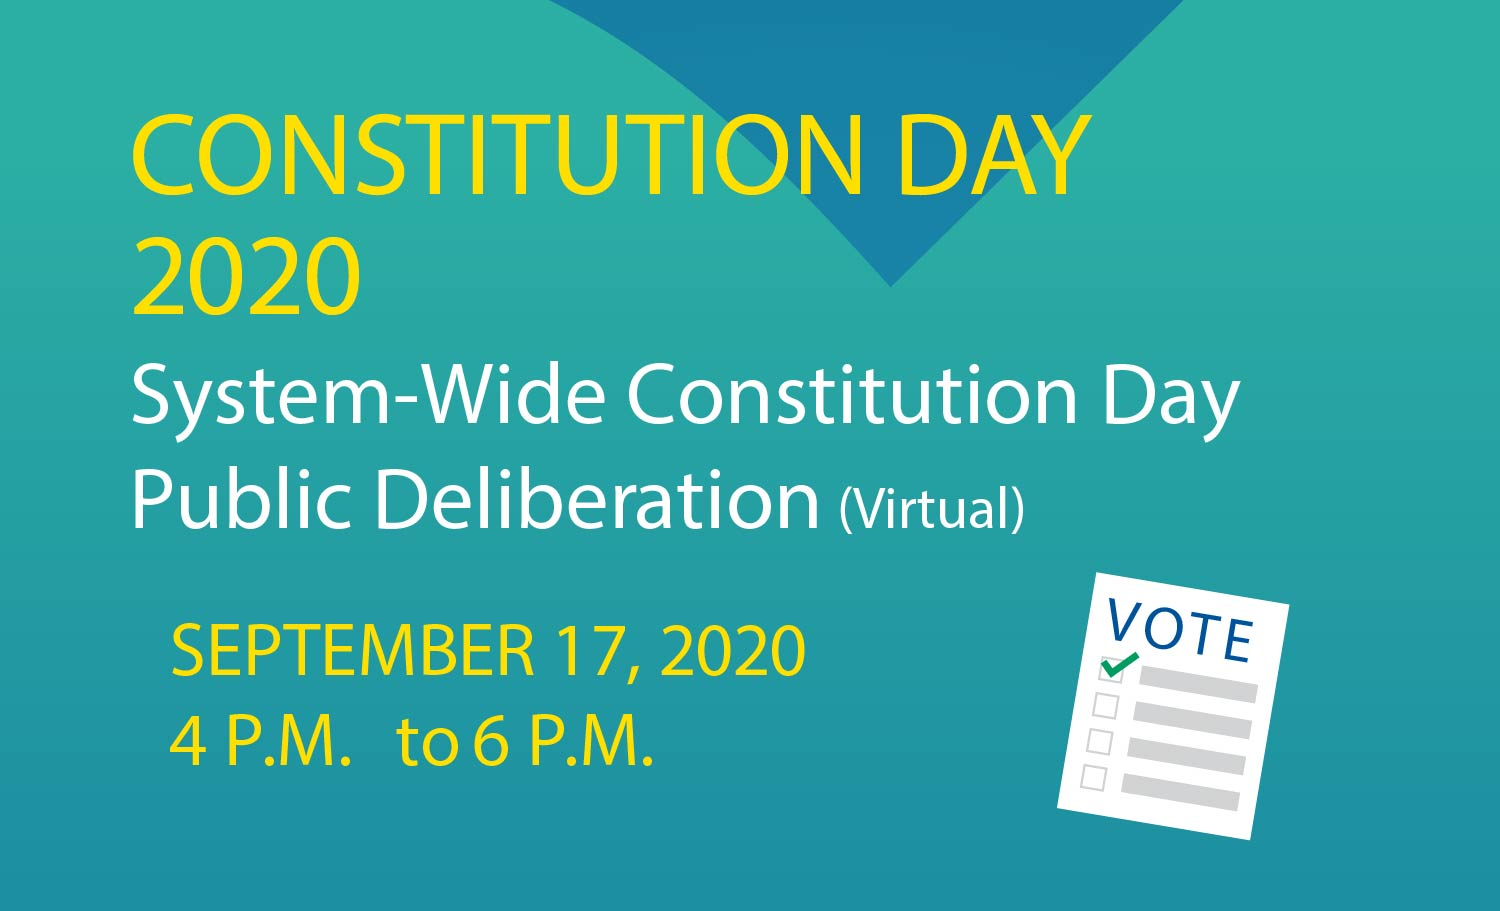 Constitution Day - System-Wide Public Deliberation